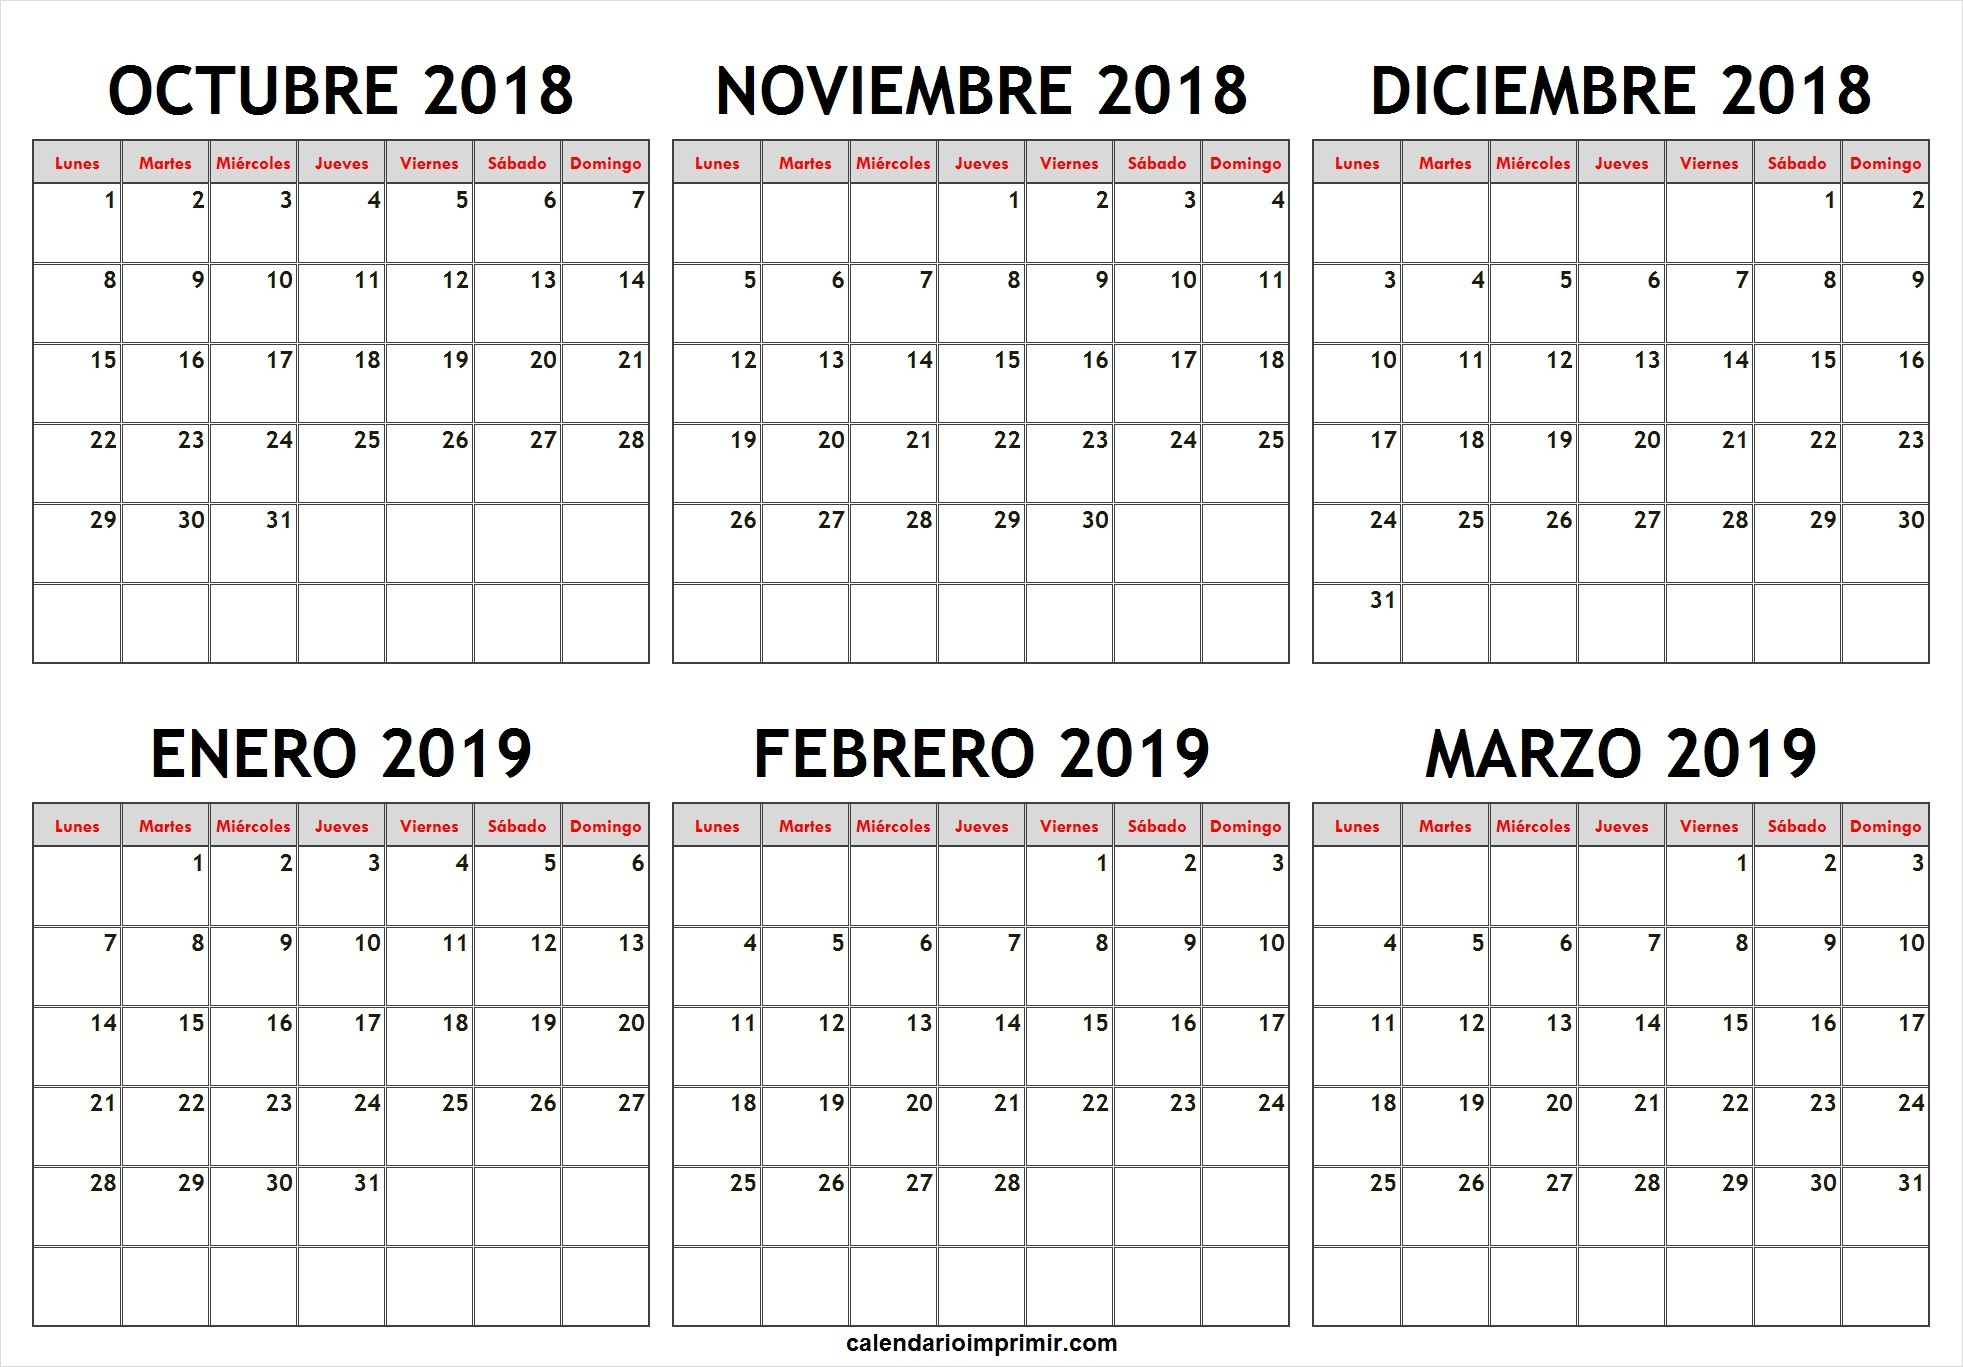 Calendario 2019 Colombia Almanaque 2020 Venezuela Más Recientes Calendario Febrero 2019 63ld Calendario Calendar March